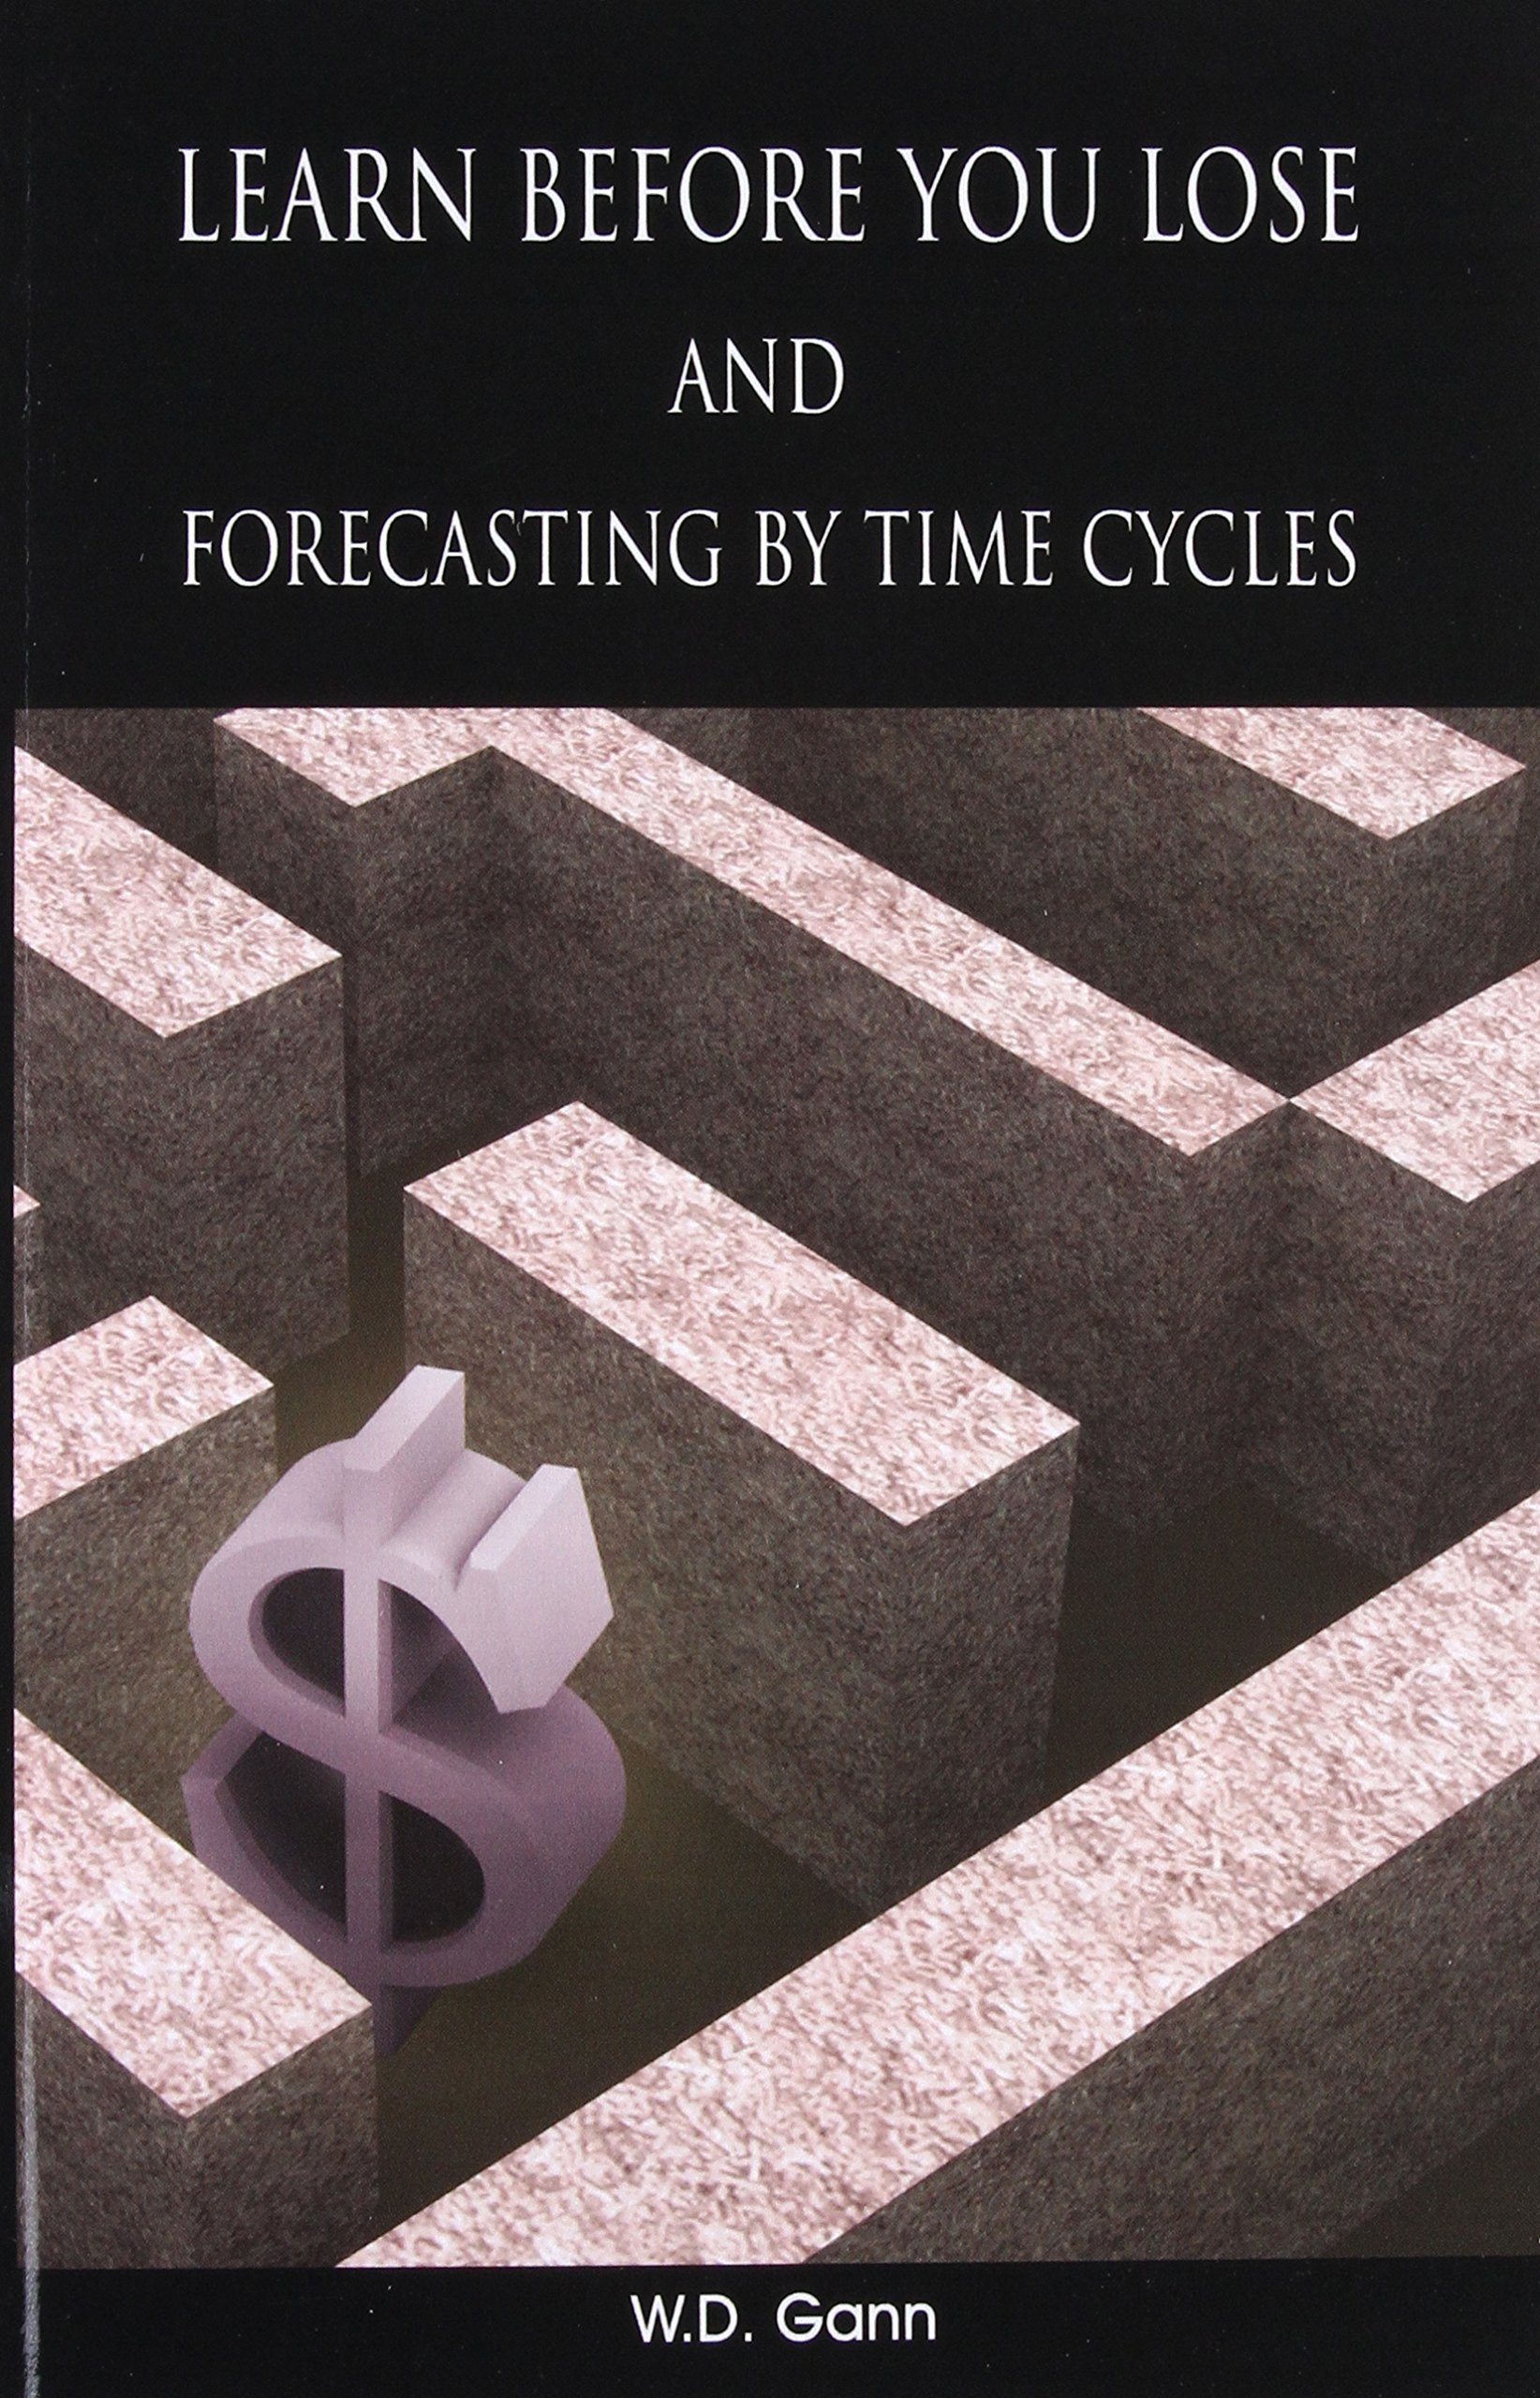 Learn Before You Lose AND Forecasting By Time Cycles: W. D. Gann:  9789650060084: Amazon.com: Books